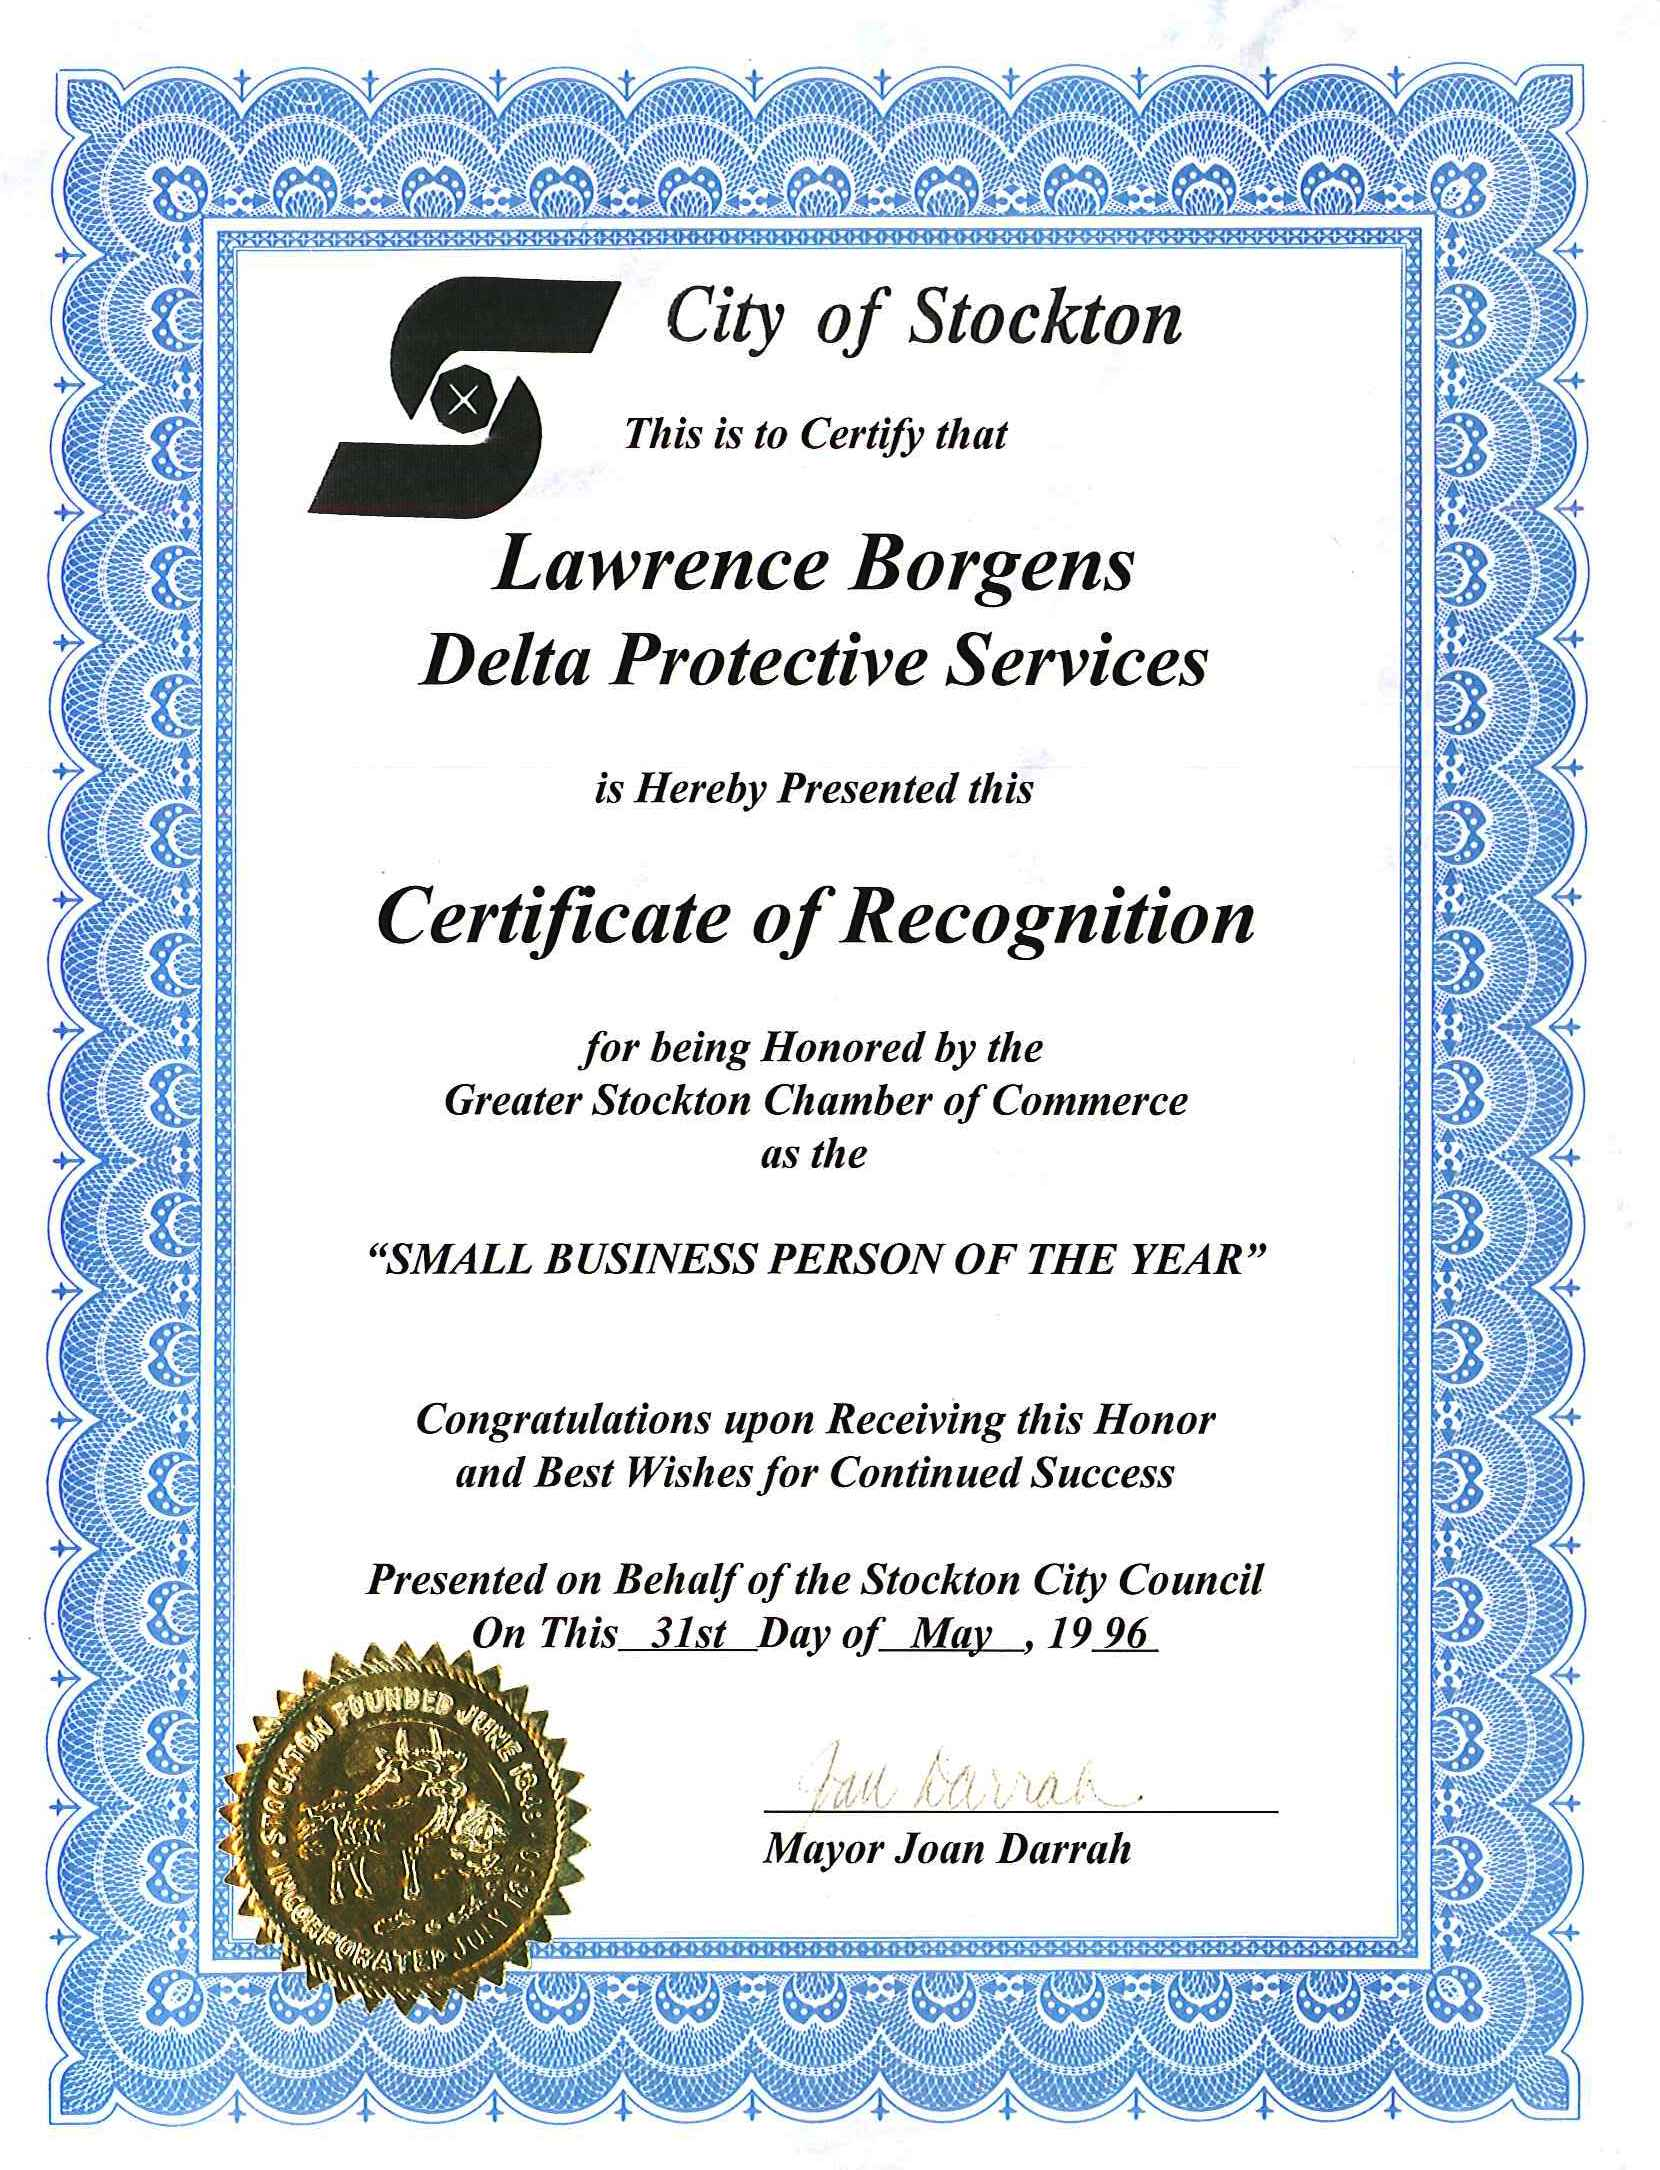 Small Business Person of the Year - City of Stockton